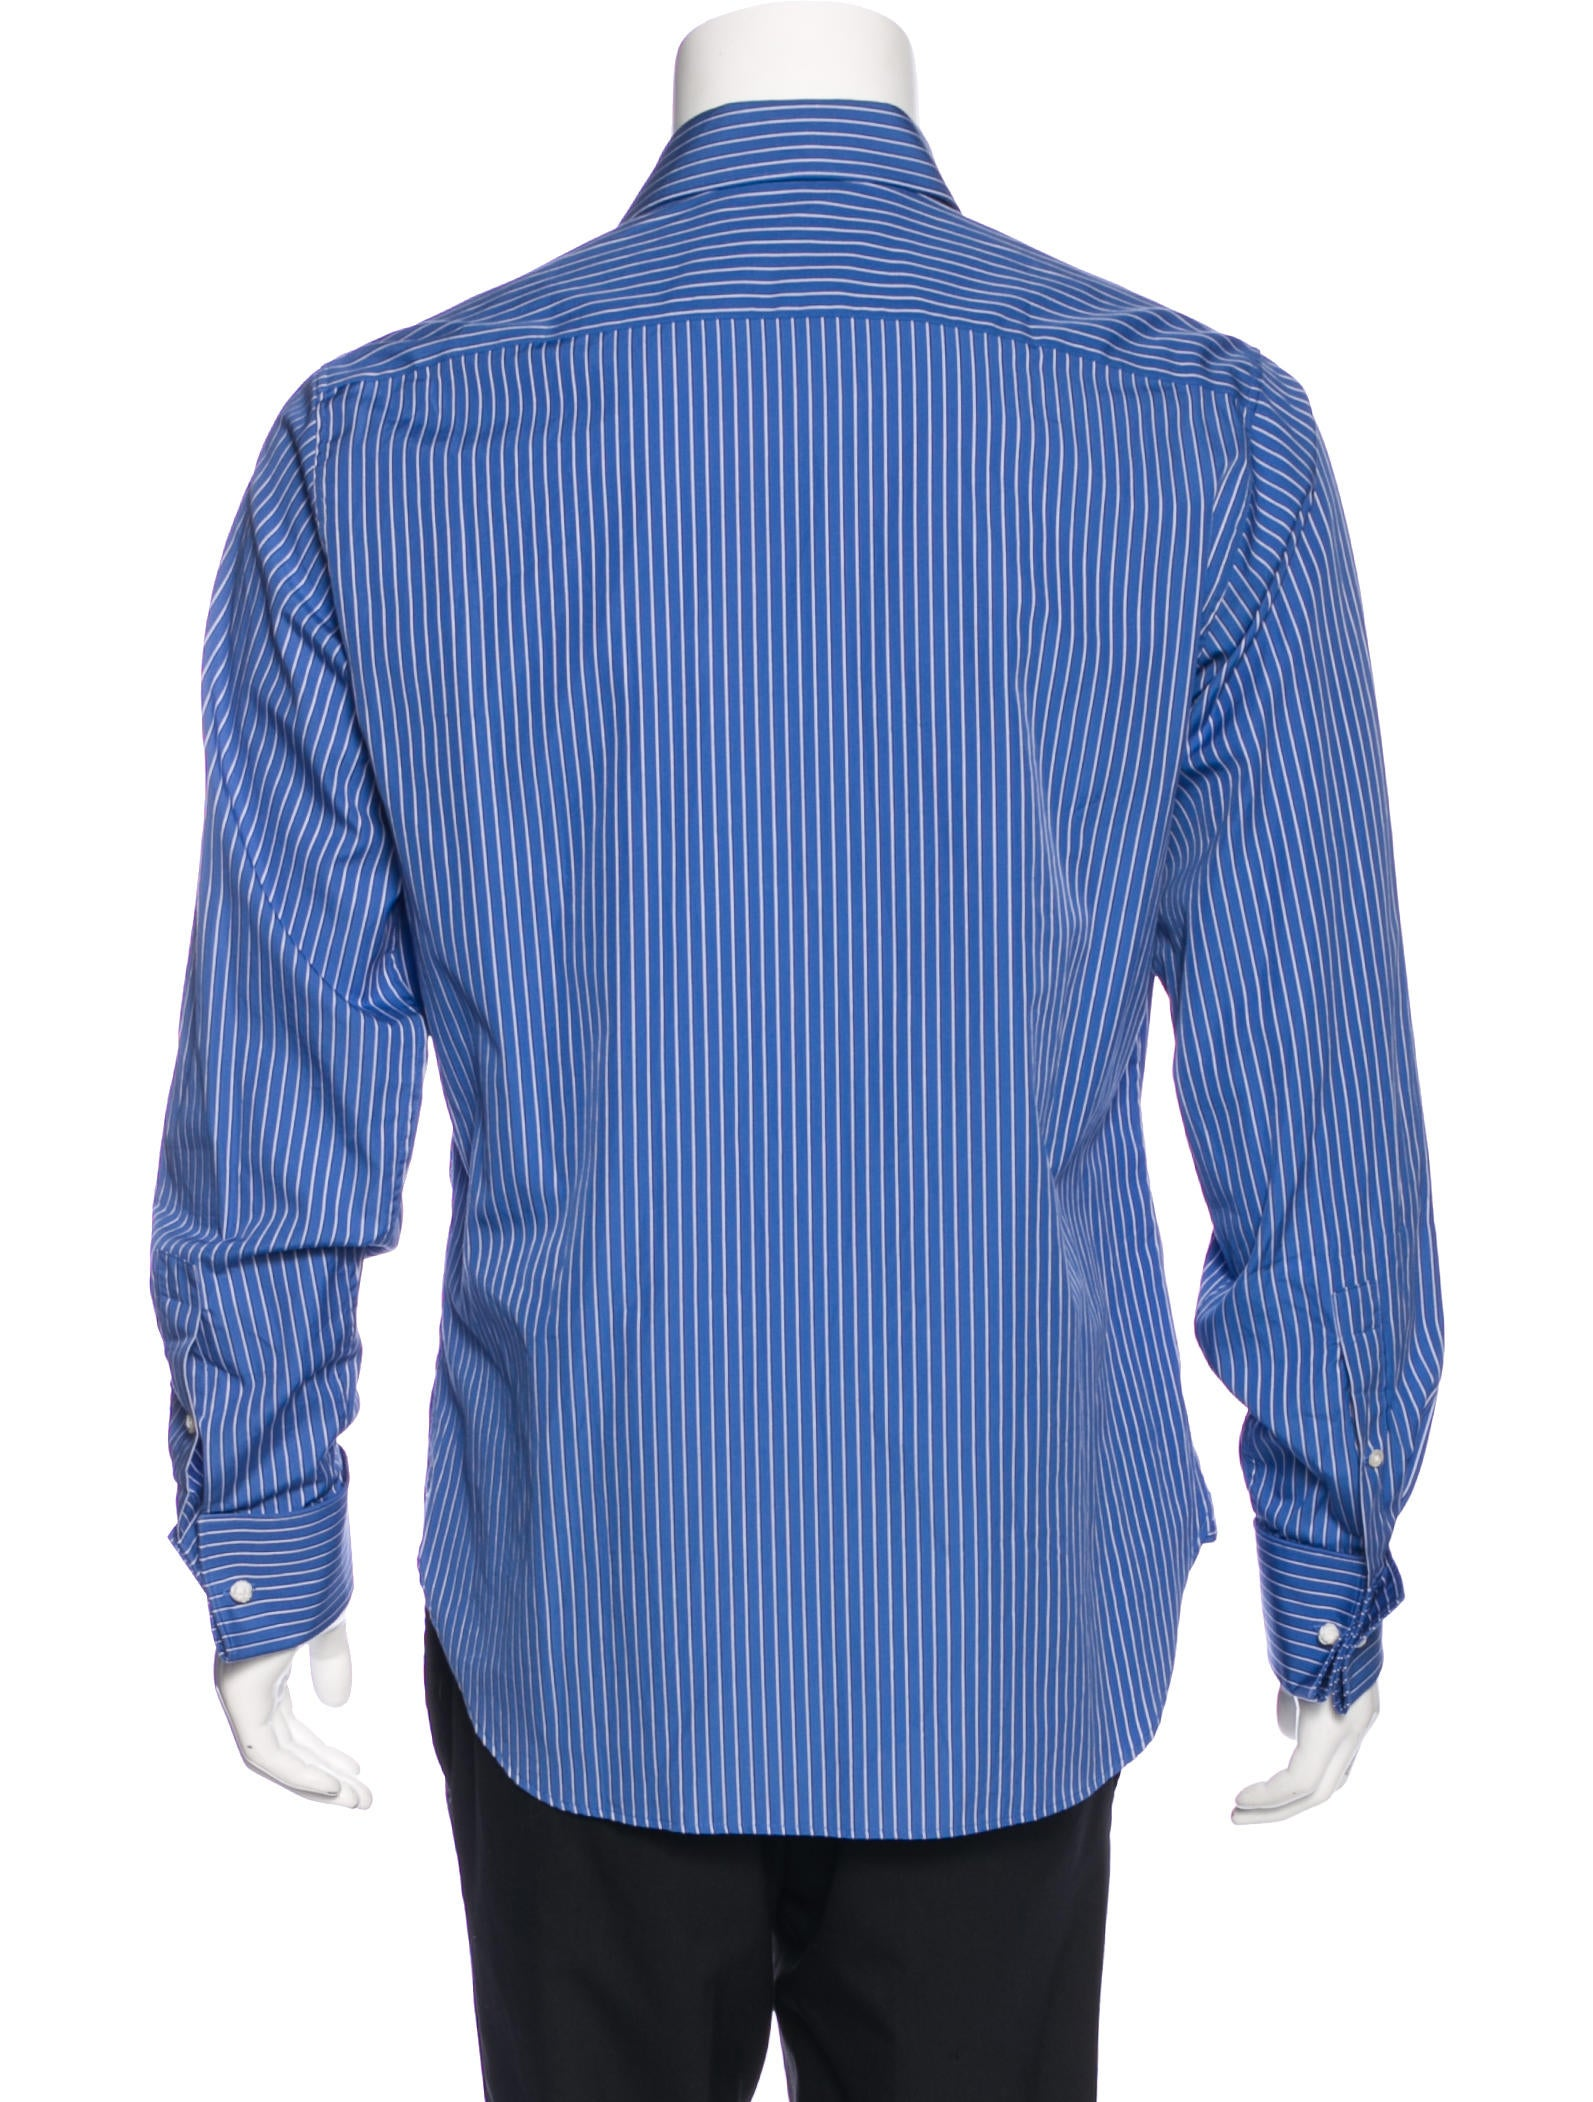 michael kors striped french cuff shirt clothing